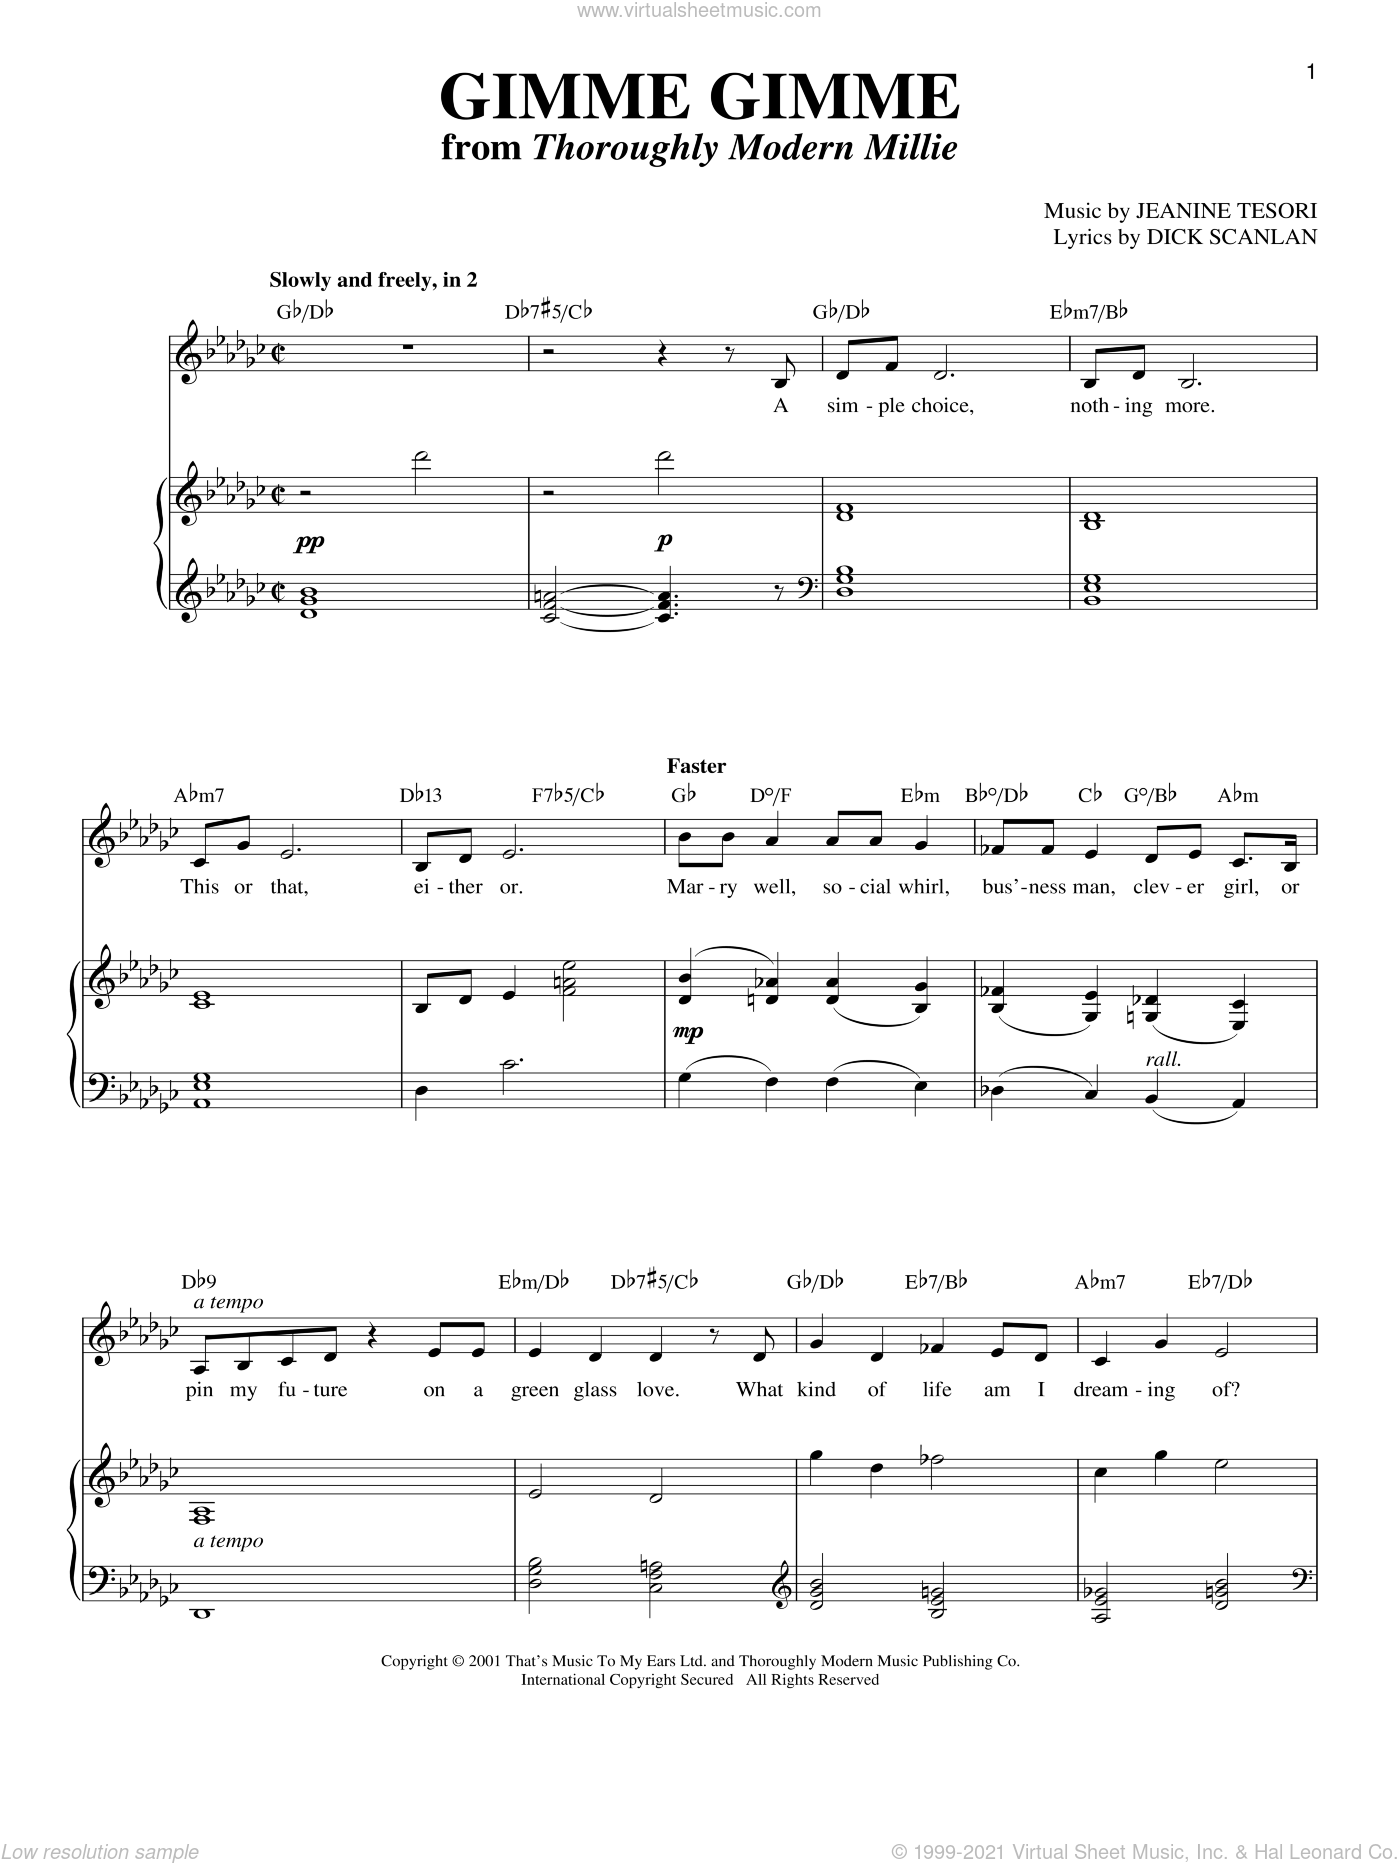 Gimme Gimme sheet music for voice and piano by Jeanine Tesori and Dick Scanlan. Score Image Preview.